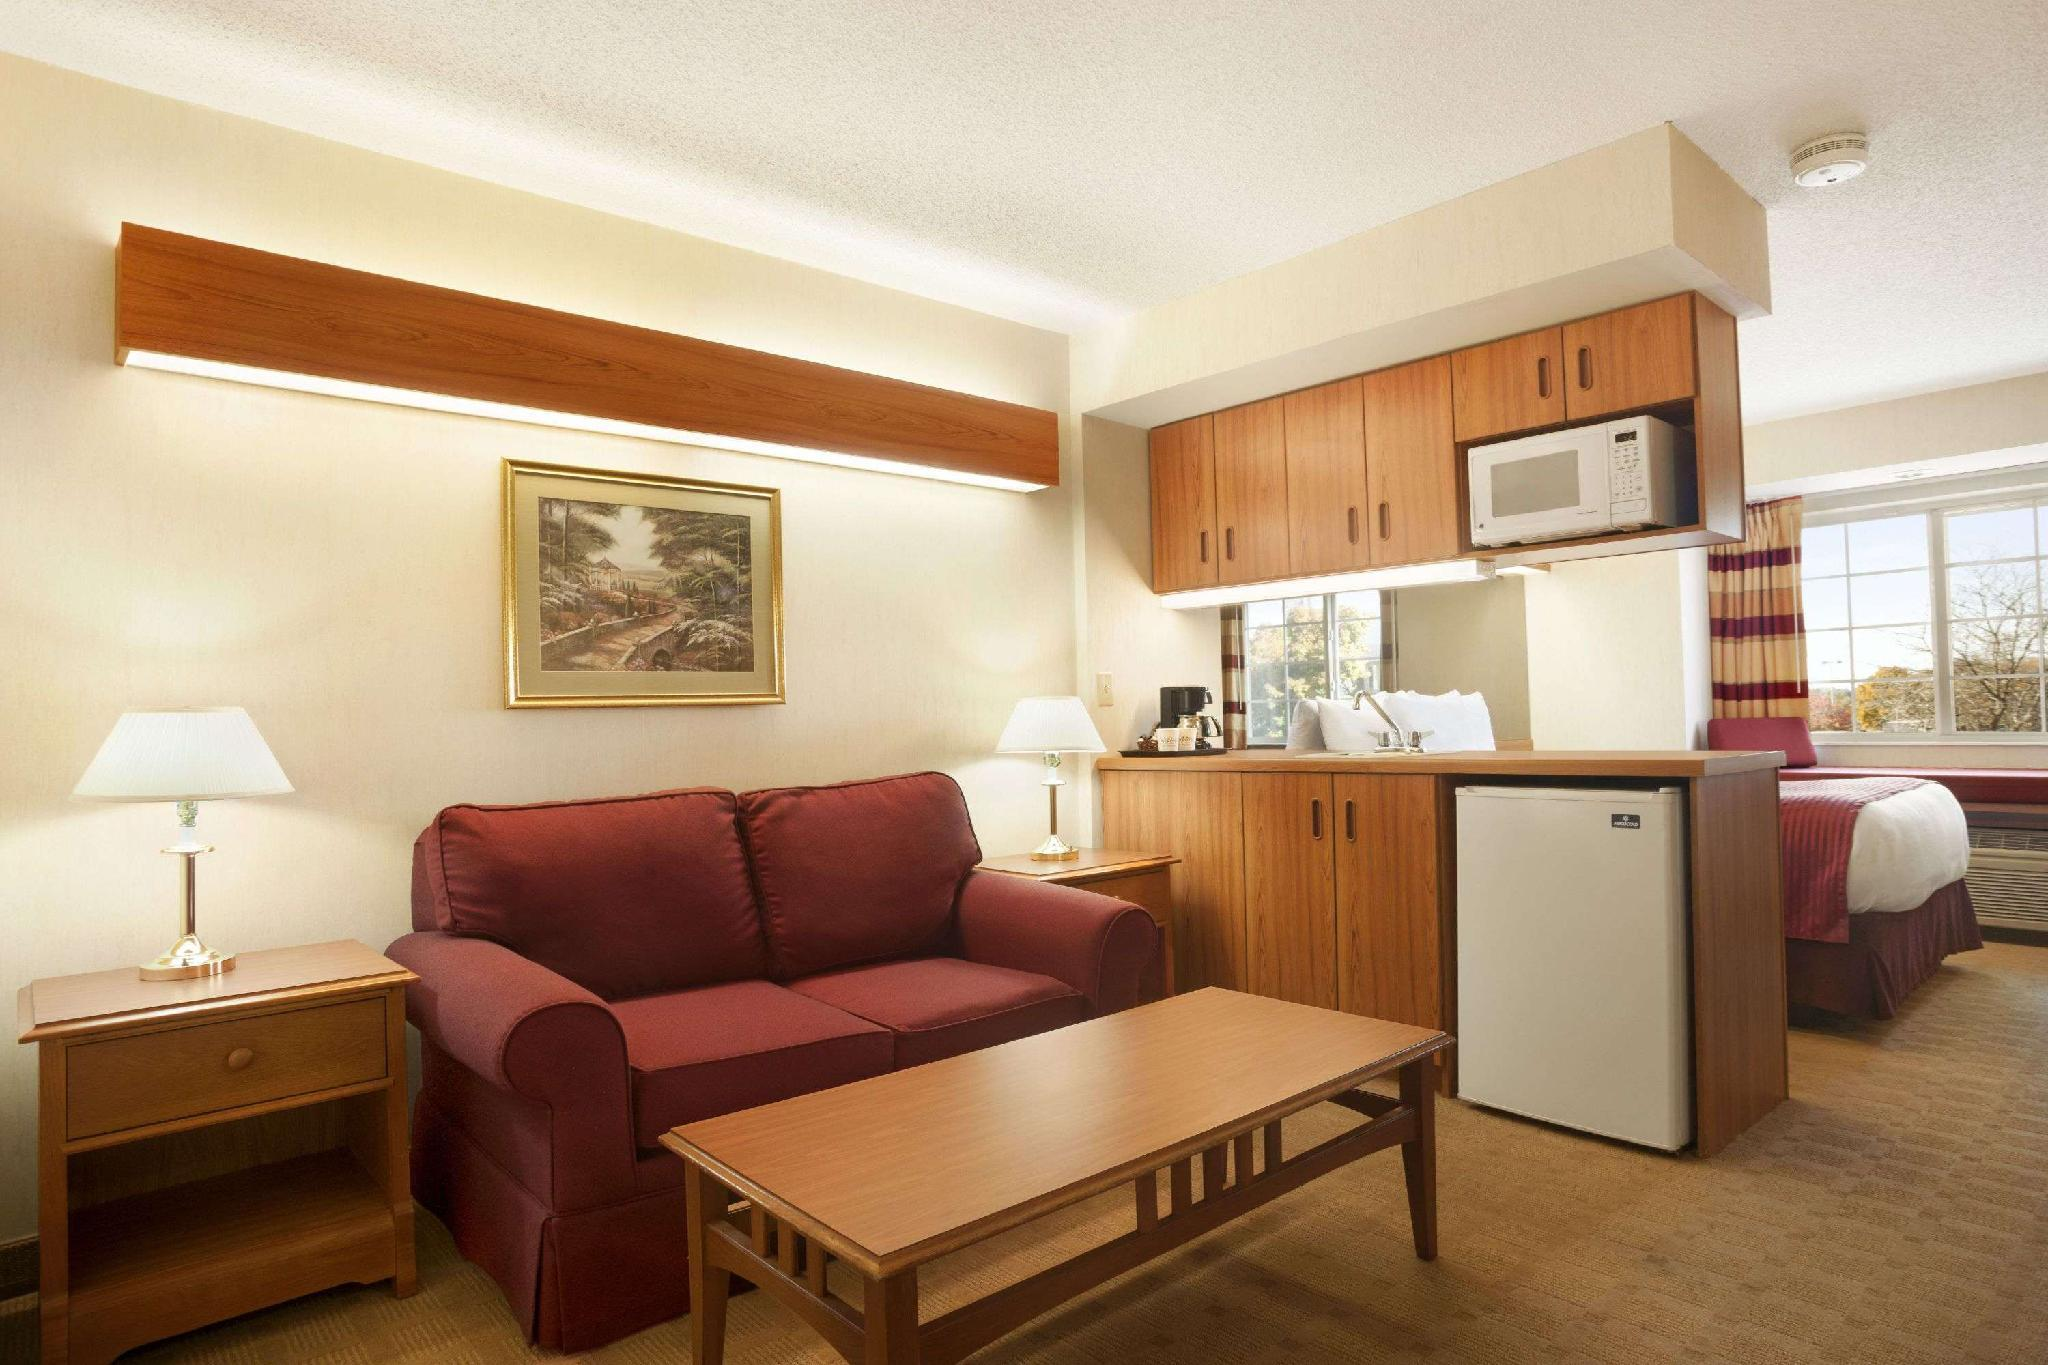 Microtel Inn & Suites by Wyndham Ann Arbor, Washtenaw